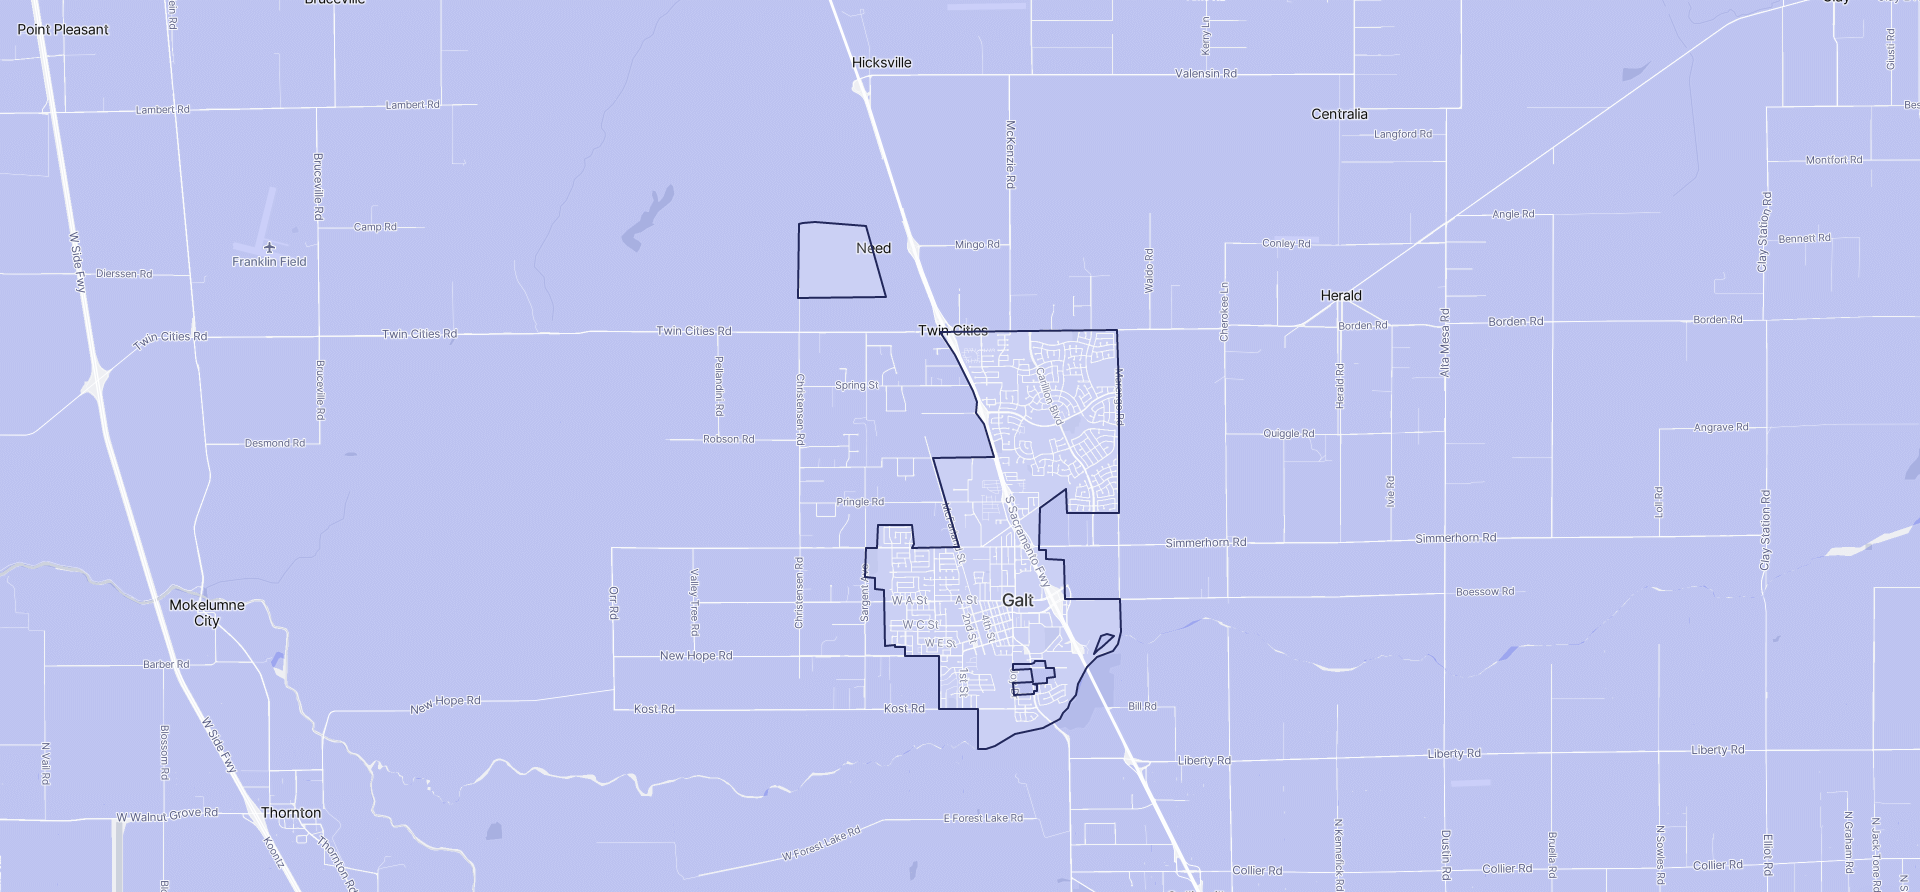 Image of Galt boundaries on a map.